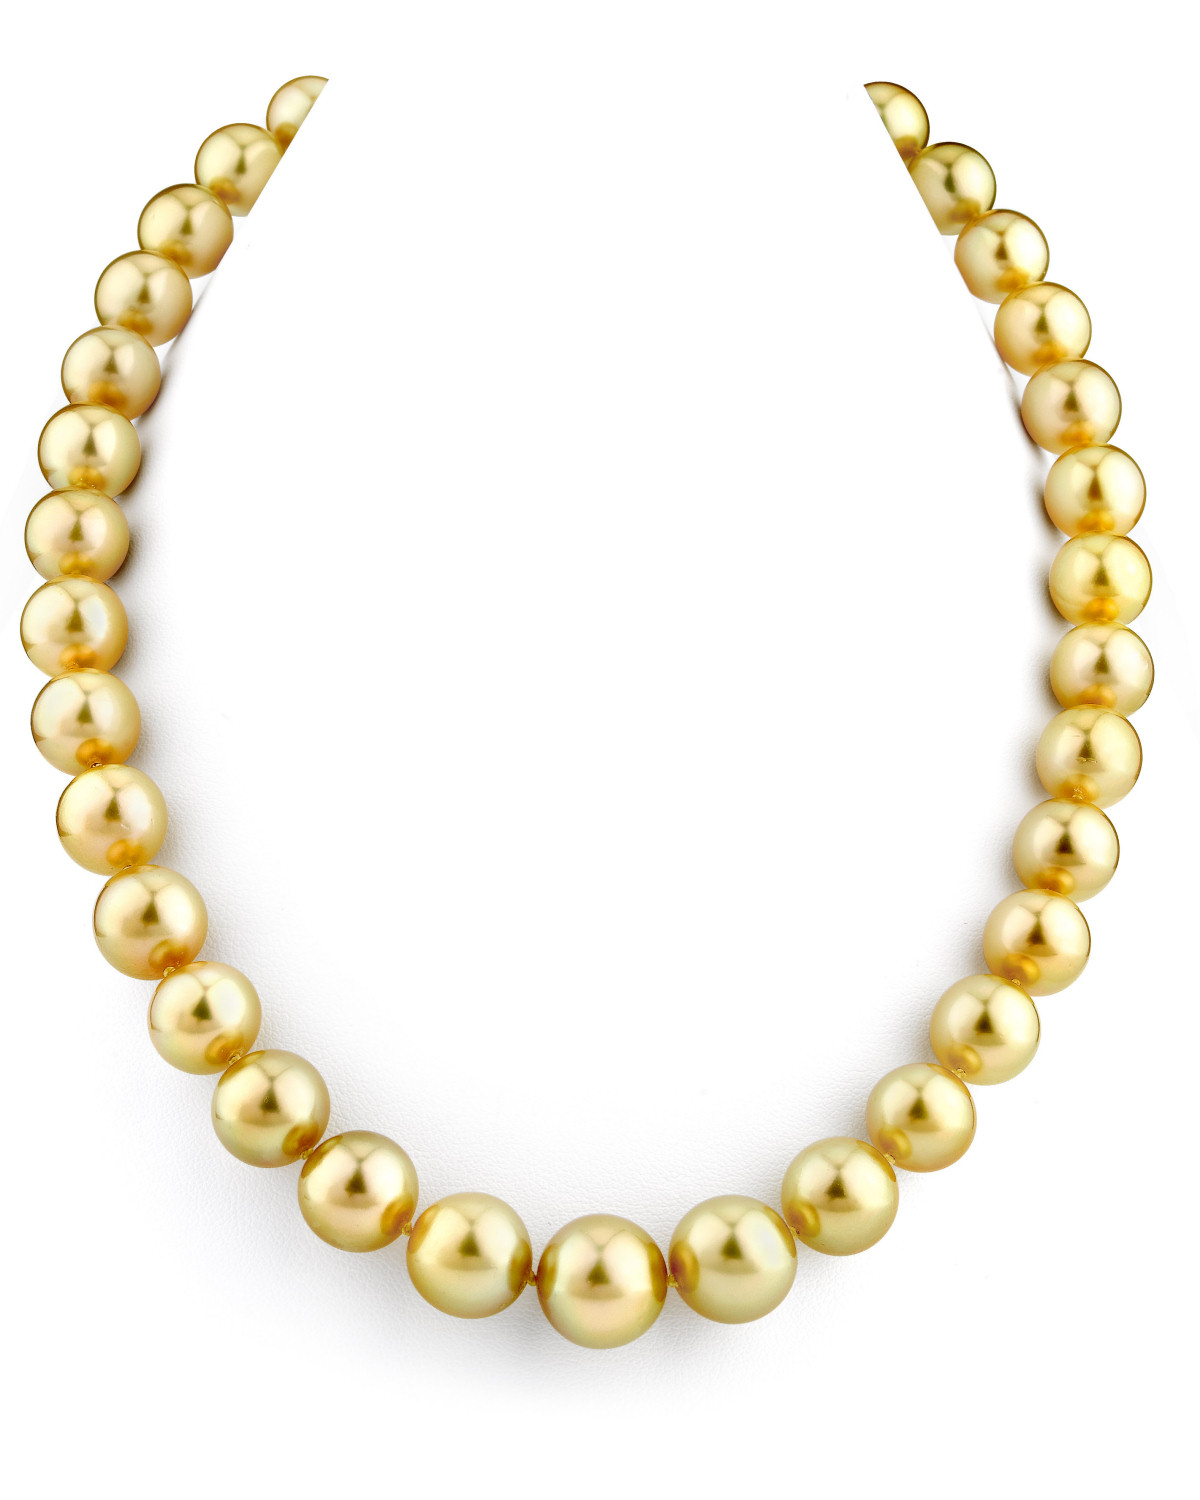 Buy 11 13mm Golden South Sea Pearl Necklace For 6 999